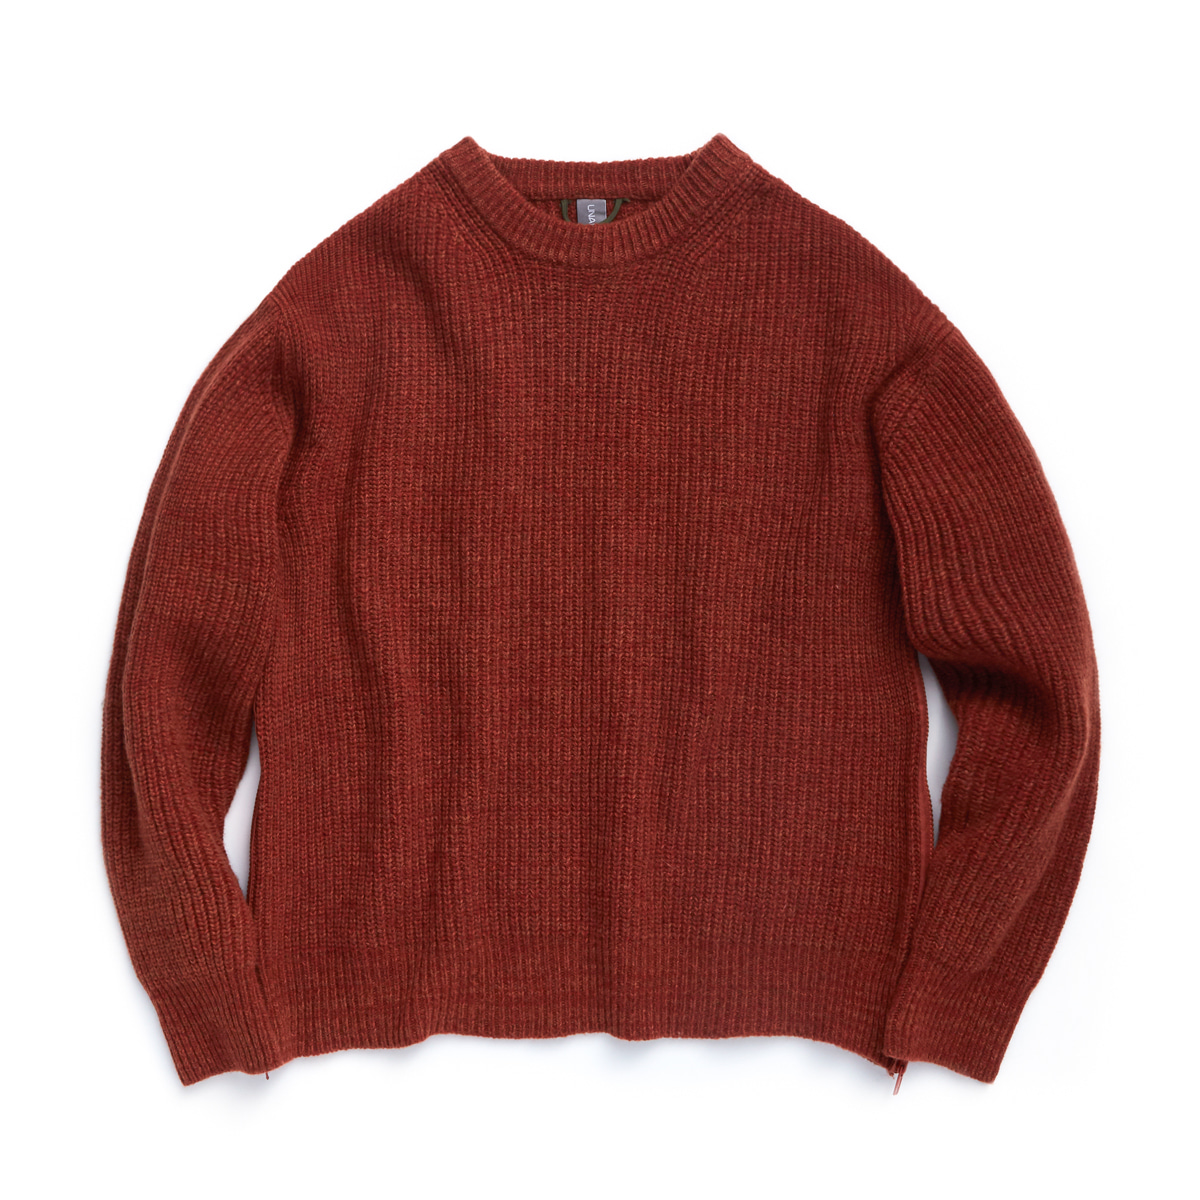 언어펙티드 OVERSIZED CREWNECK KNIT_Burnt Orange Melange